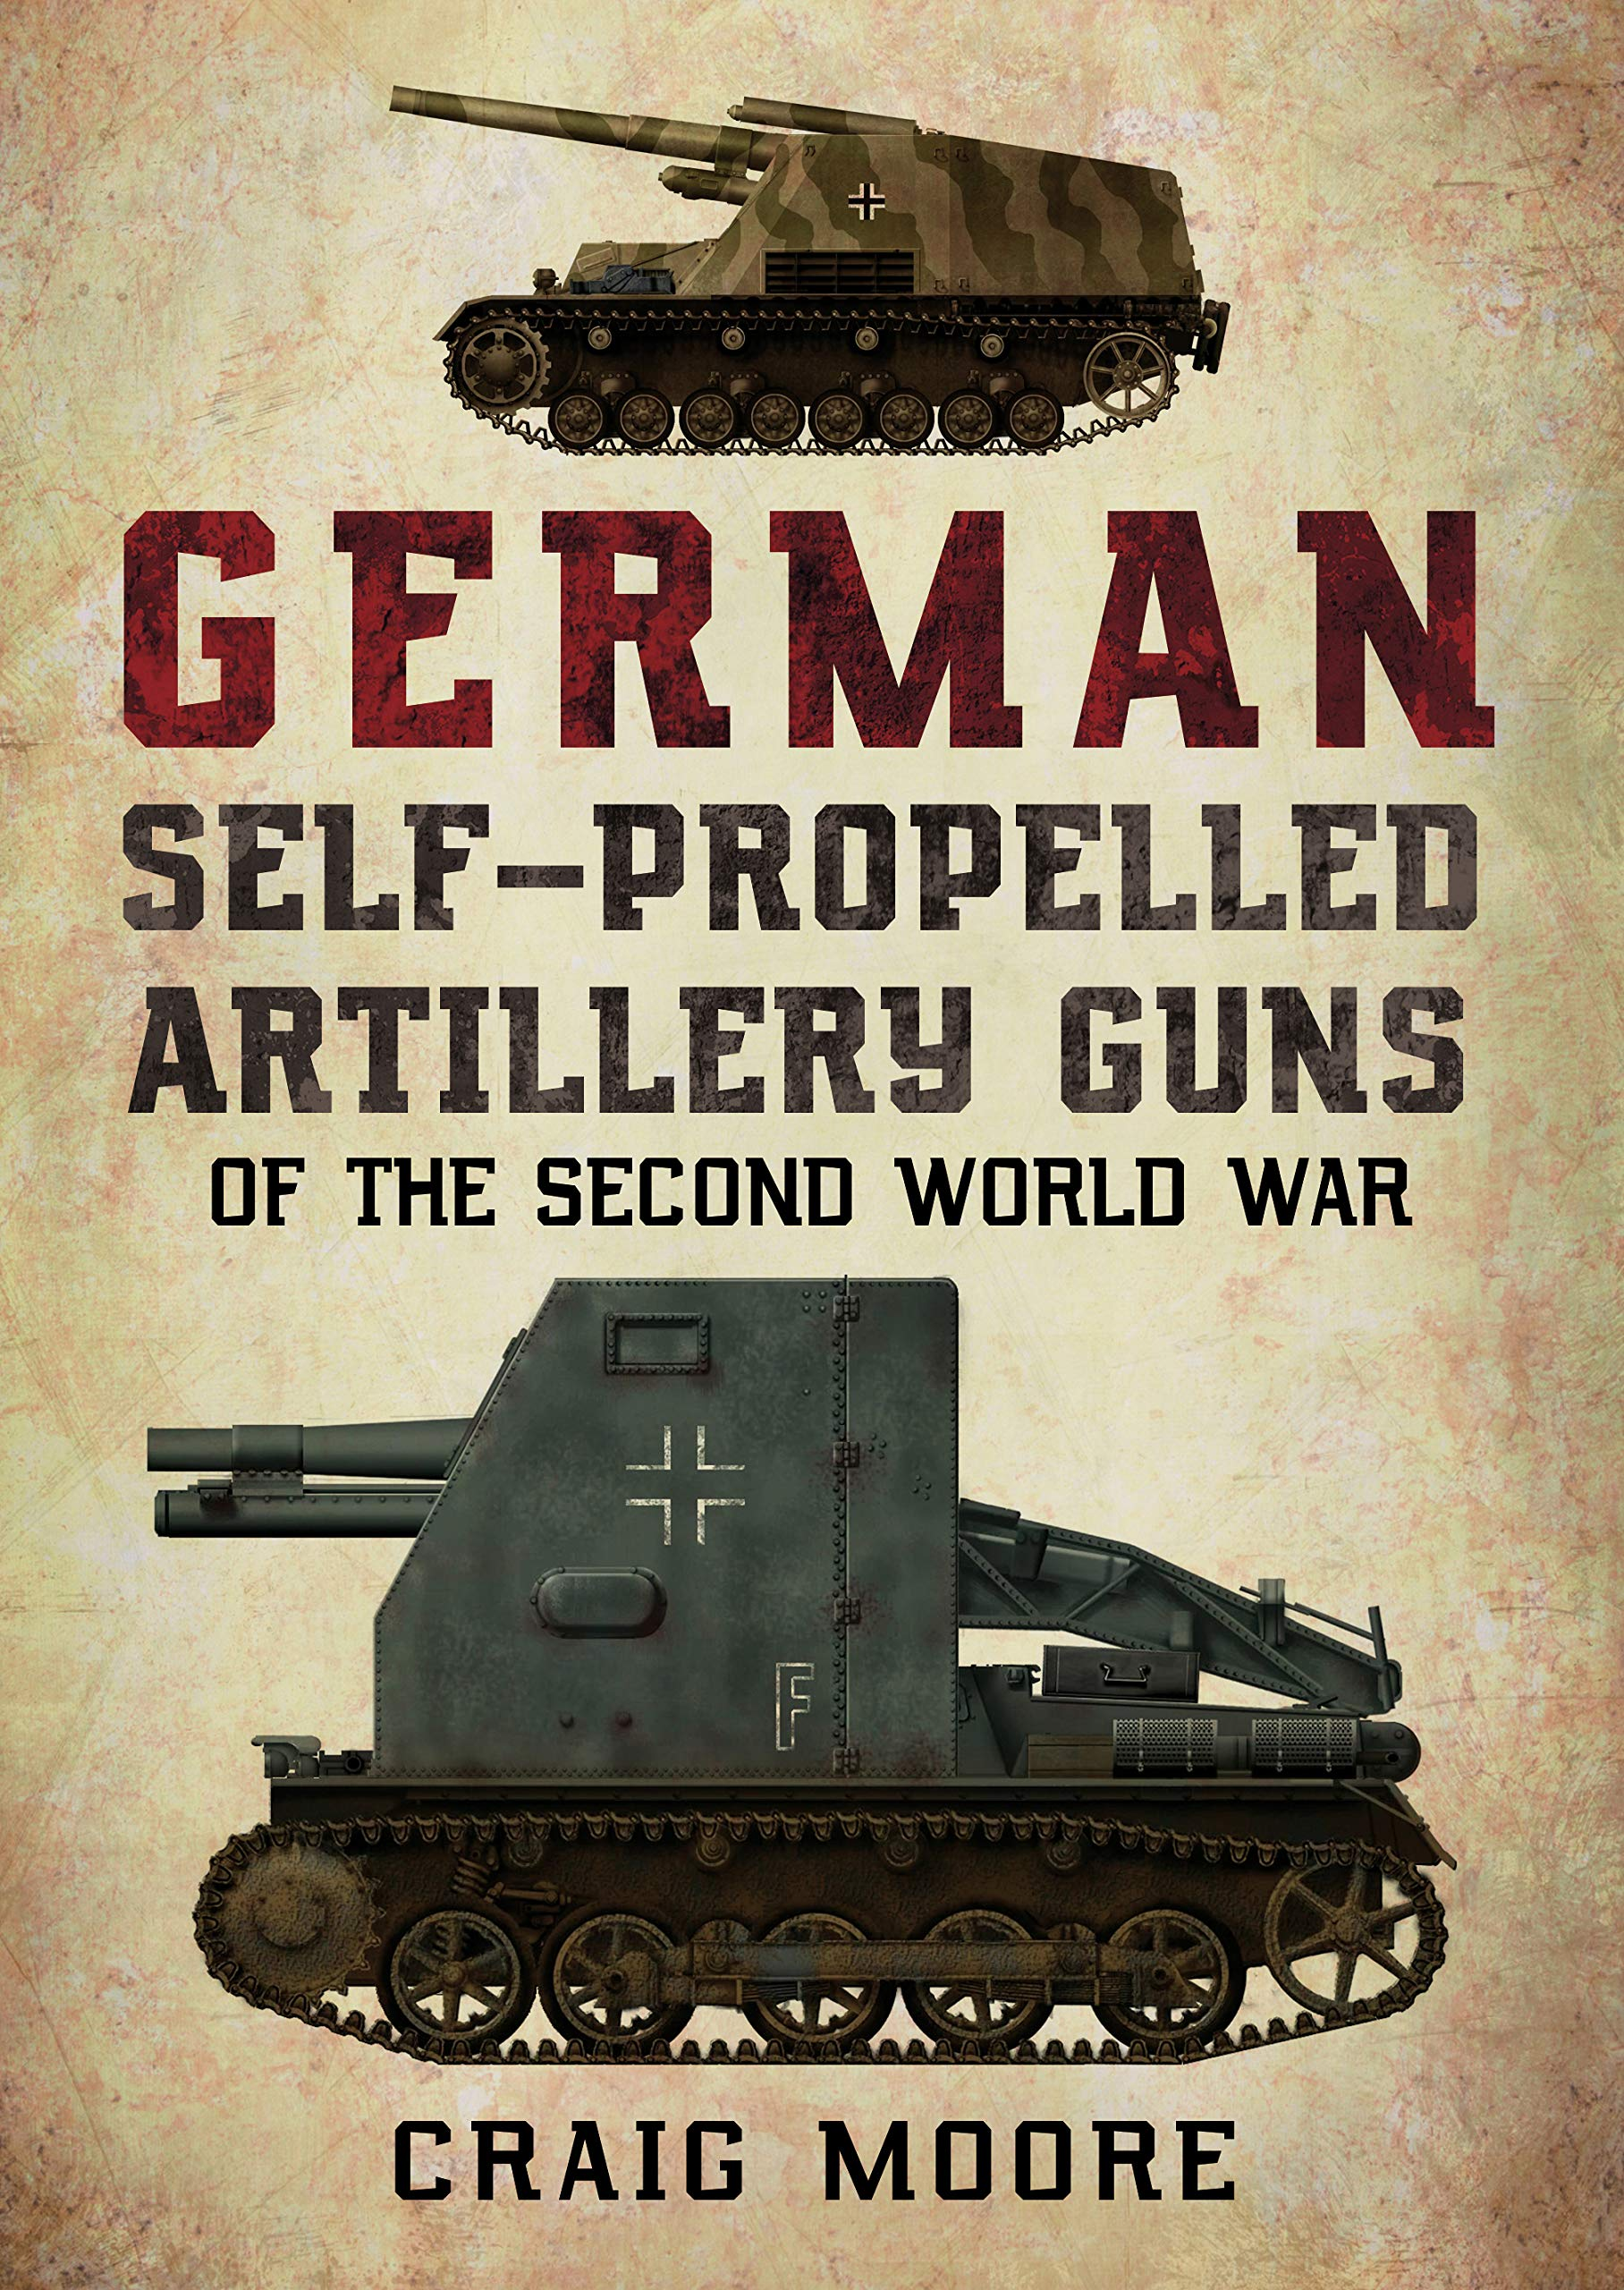 German Self-Propelled Artillery Guns of the Second World War